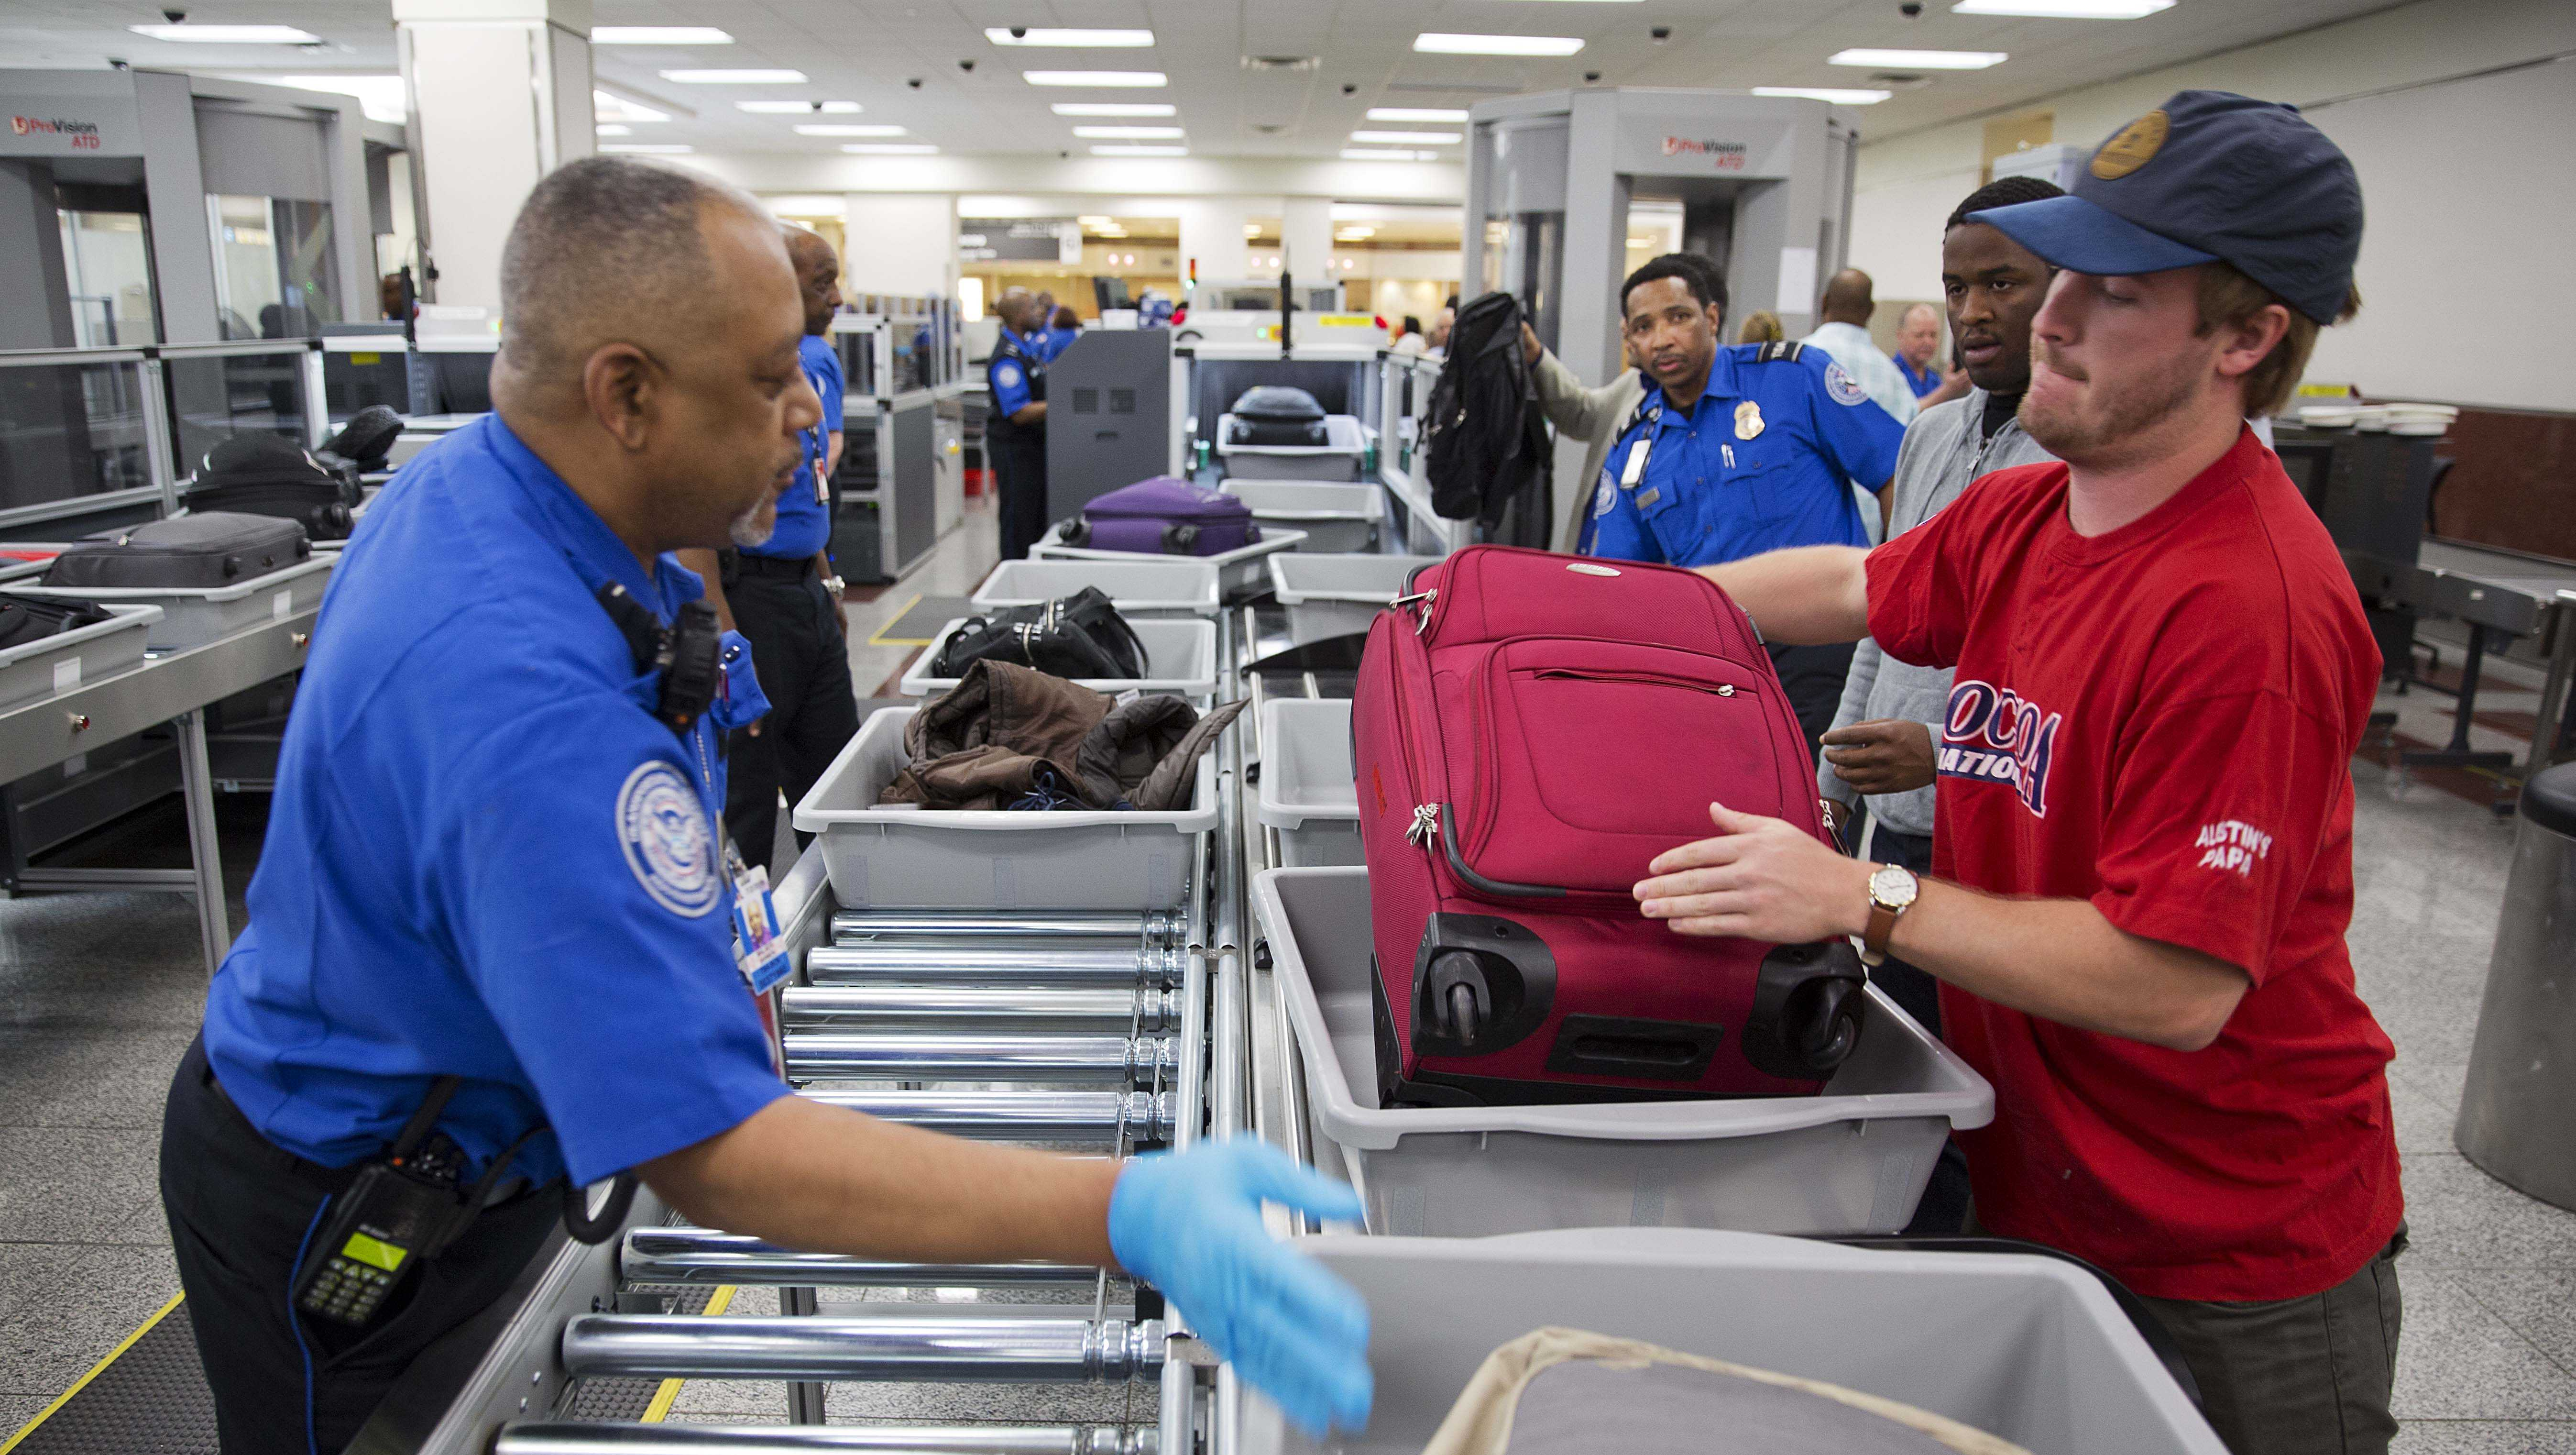 A TSA official helps passengers load their carry-on belongings onto an automated conveyer belt at Hartsfield-Jackson Atlanta International Airport Wednesday, May 25, 2016, in Atlanta.